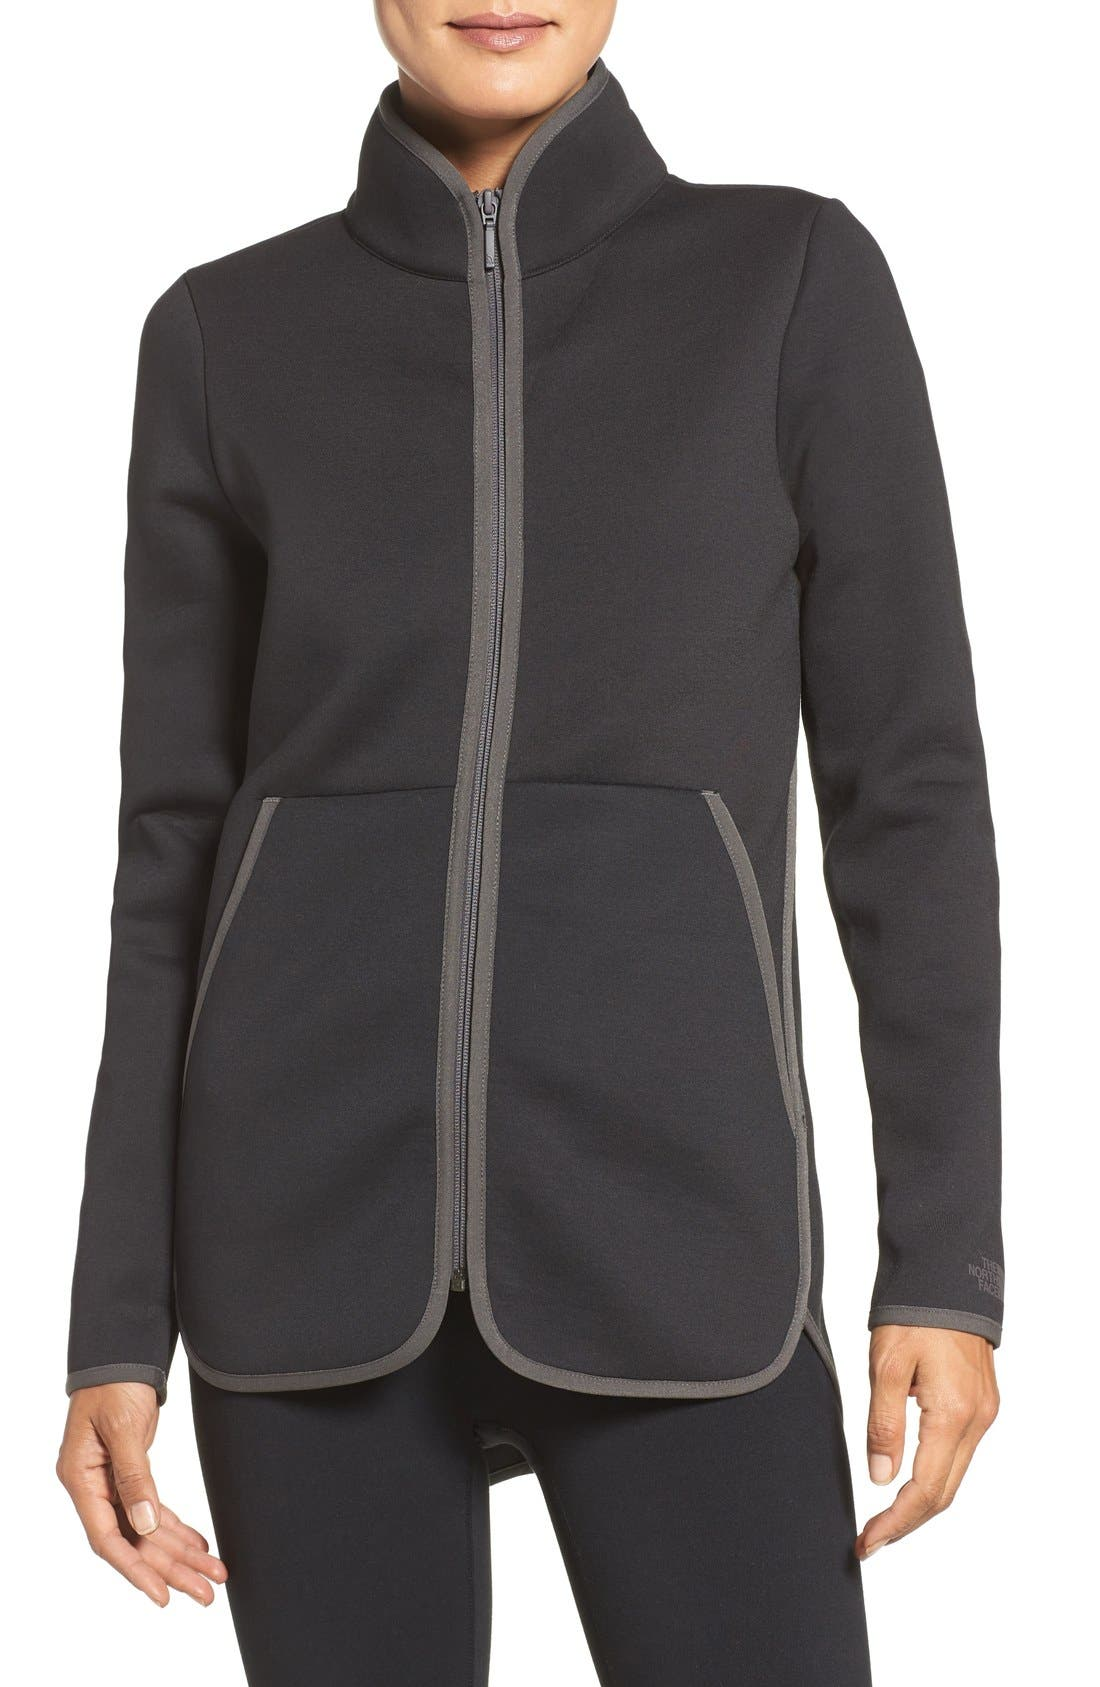 Alternate Image 1 Selected - The North Face Neo Knit Jacket